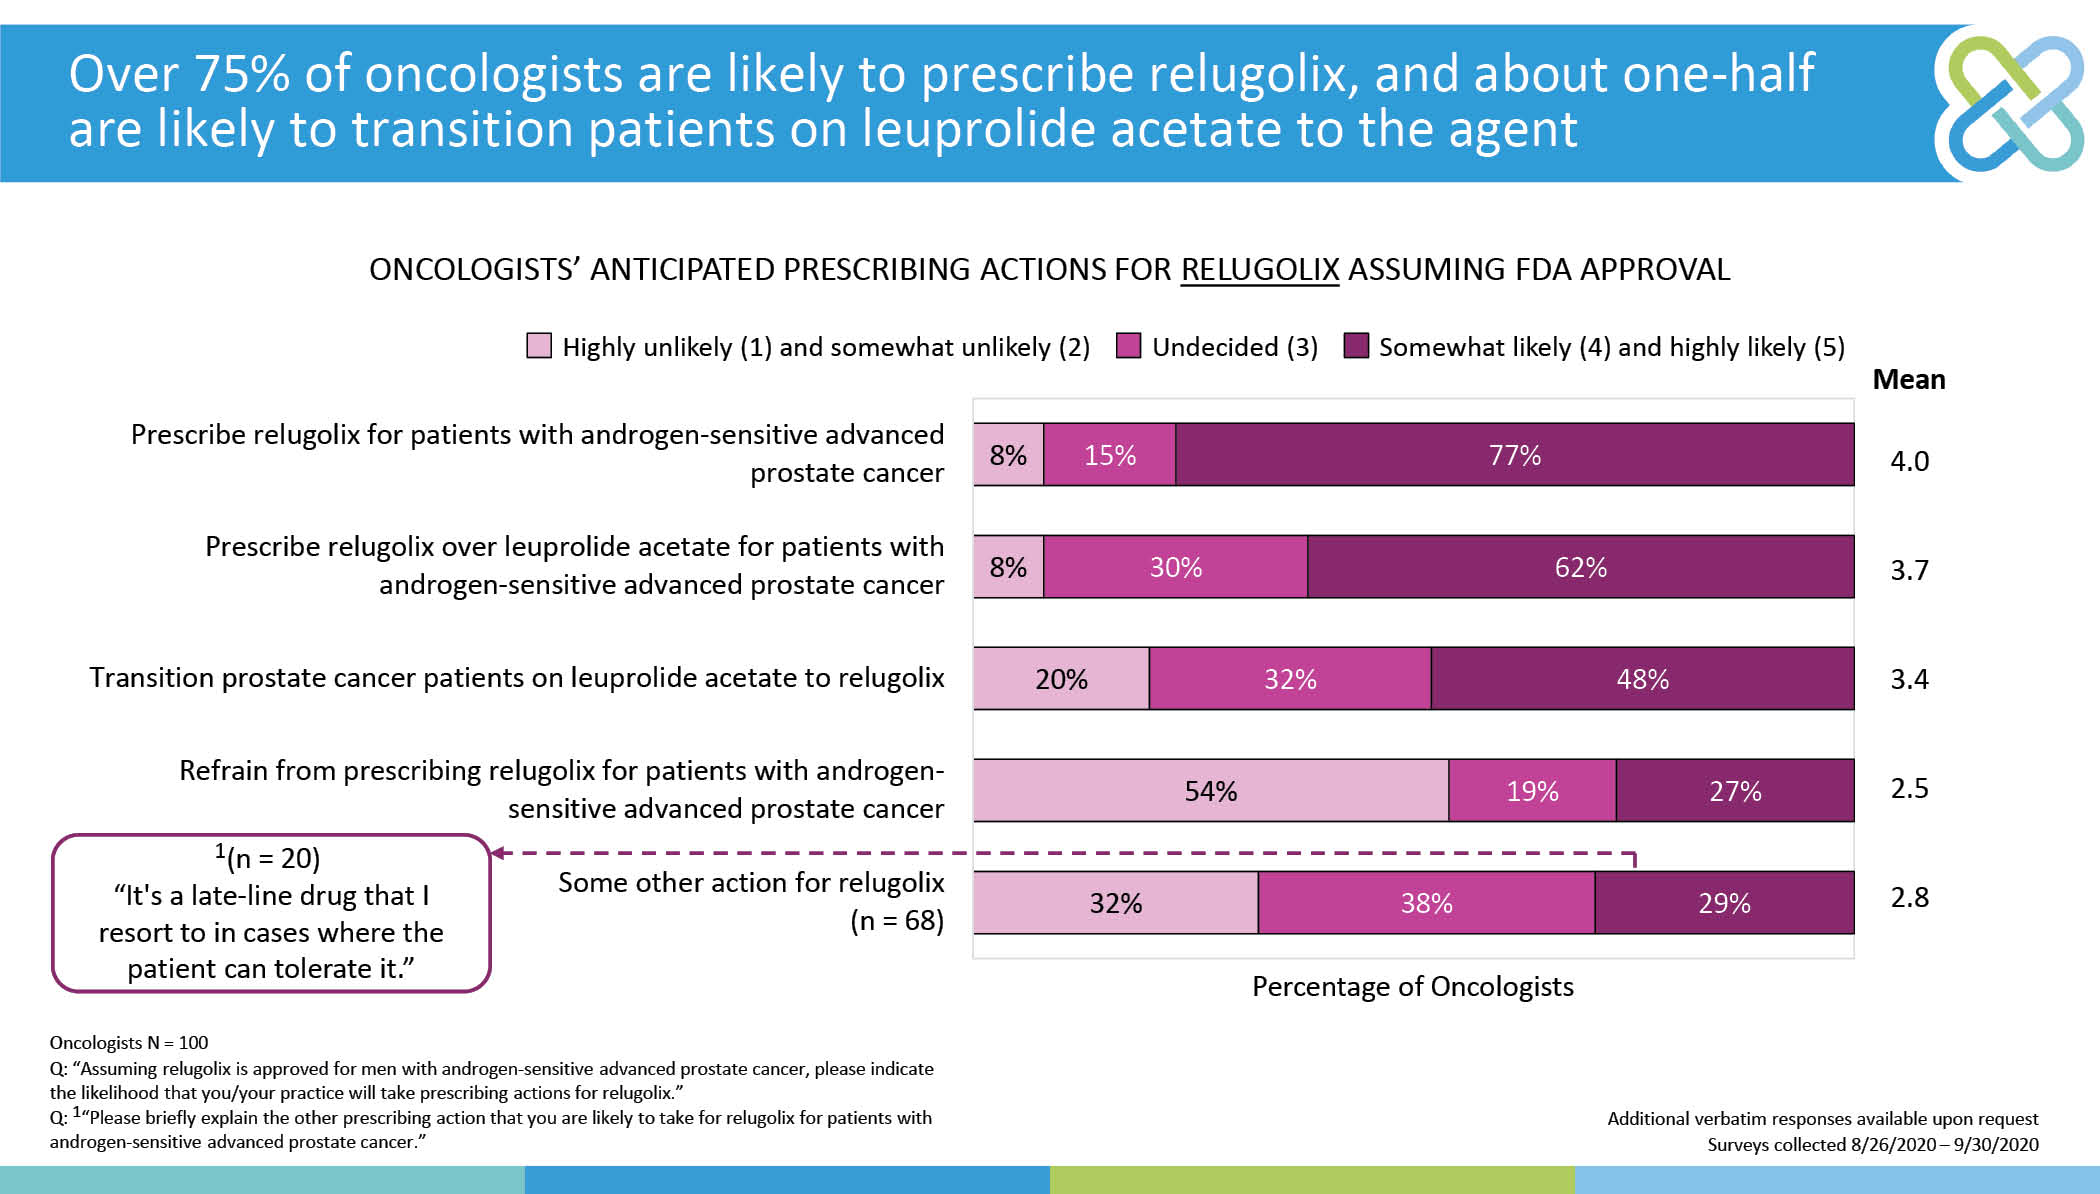 Over 75% of oncologists are likely to prescribe relugolix, and about one-half